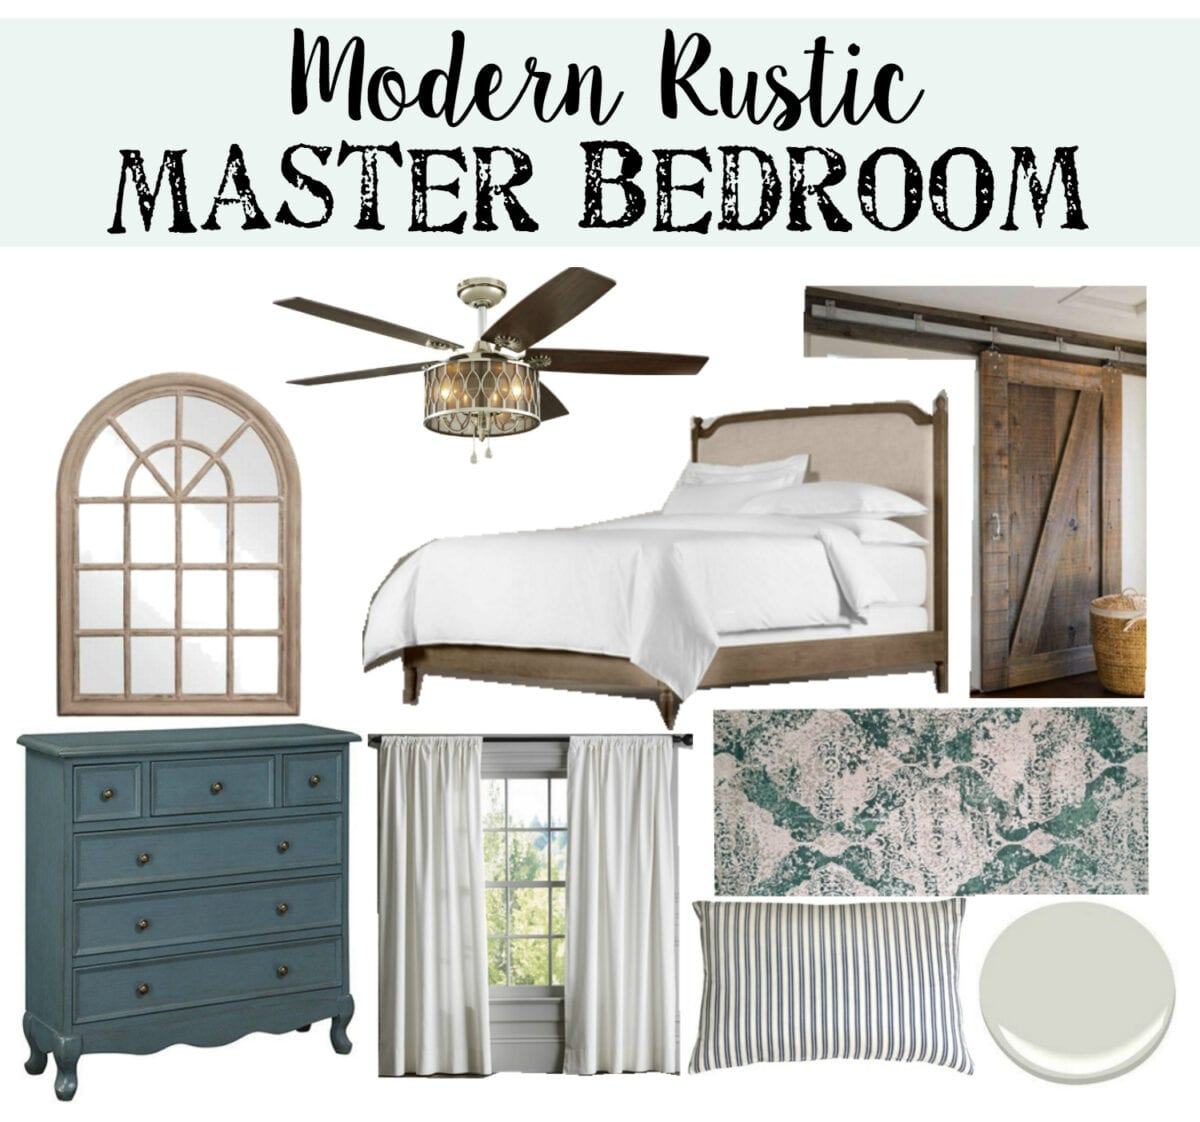 Modern Master Bedroom Design: Modern Rustic Master Bedroom Design Plan